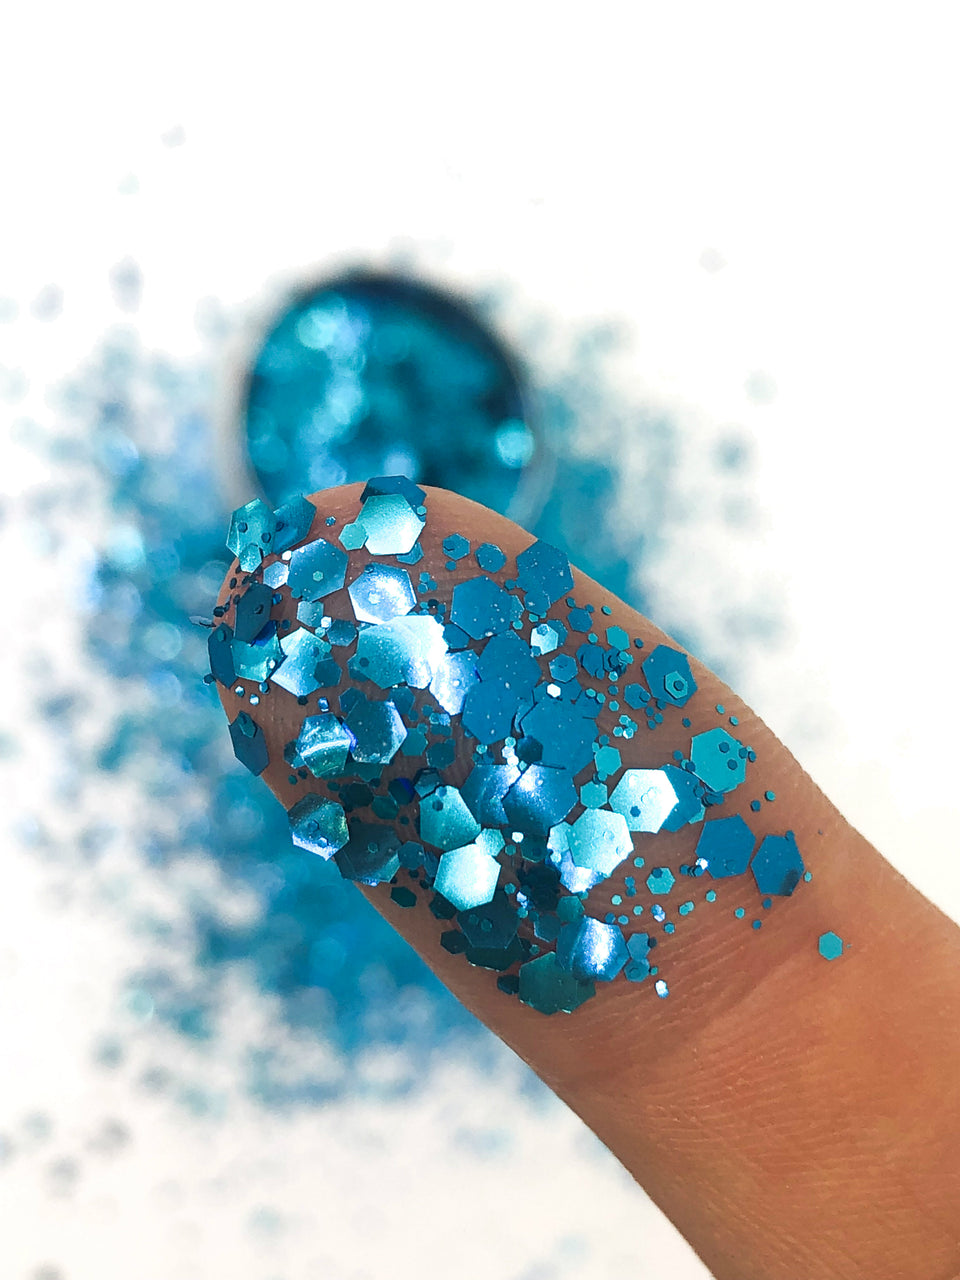 Adventurous Bluebird - loose biodegradable glitter mix - Glitterazzi Biodegradable Eco-Friendly Glitter